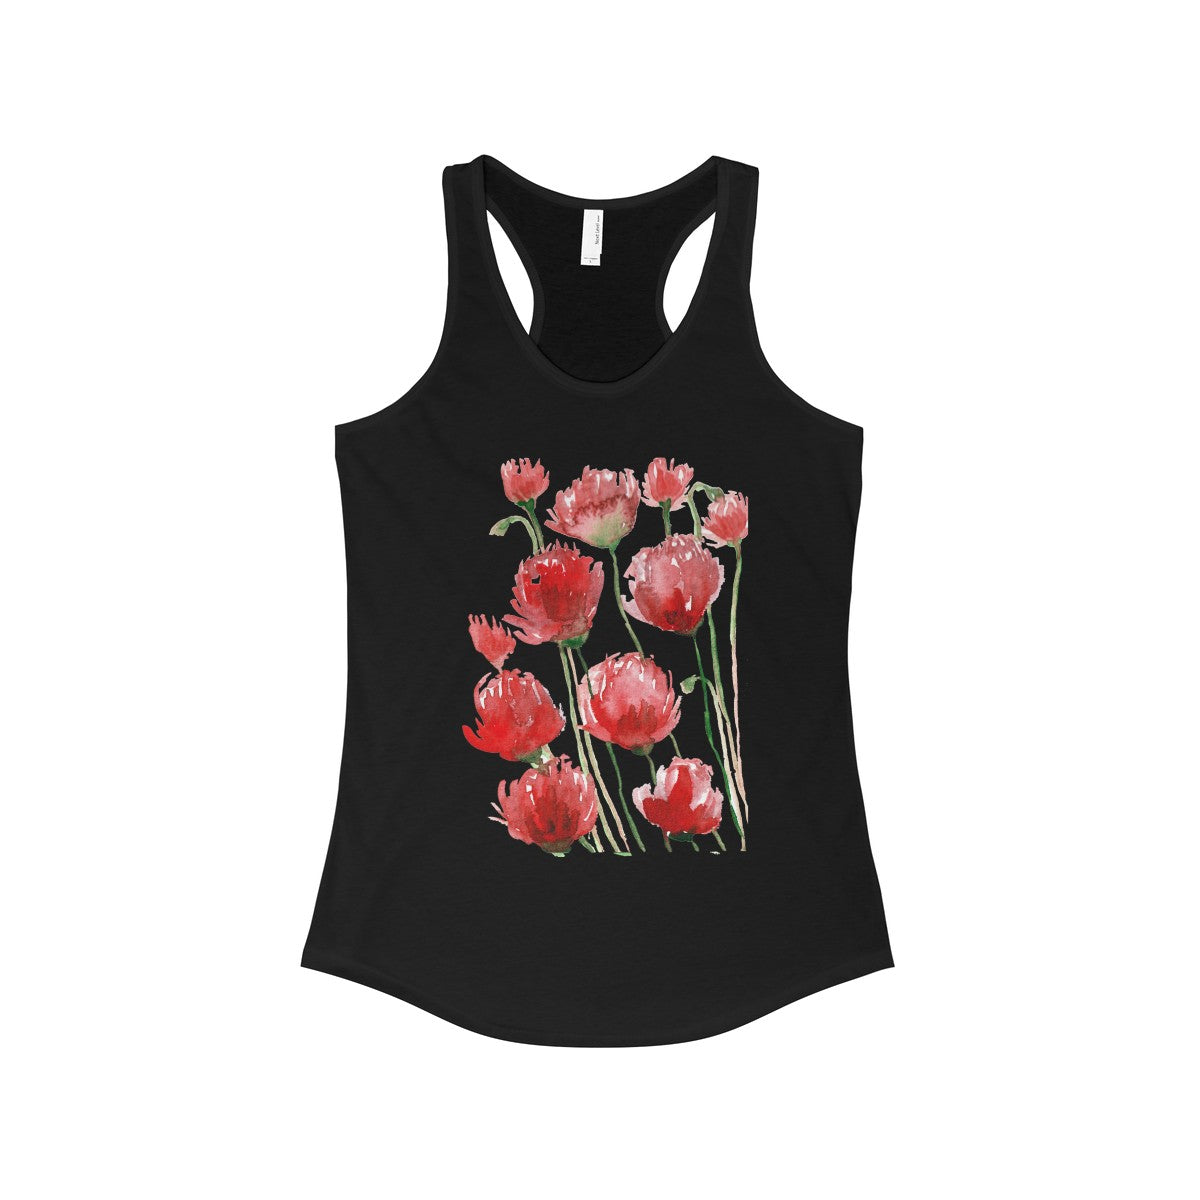 Tadayoshi Red Poppy Flower Floral Print Women's Ideal Racerback Tank - Made in the USA-Tank Top-Solid Black-L-Heidi Kimura Art LLC Red Poppy Floral Tank Top, Designer Premium Best Red Poppy Flower Floral Print Women's Ideal Racerback Tank - Made in the USA (US Size: XS-2XL)